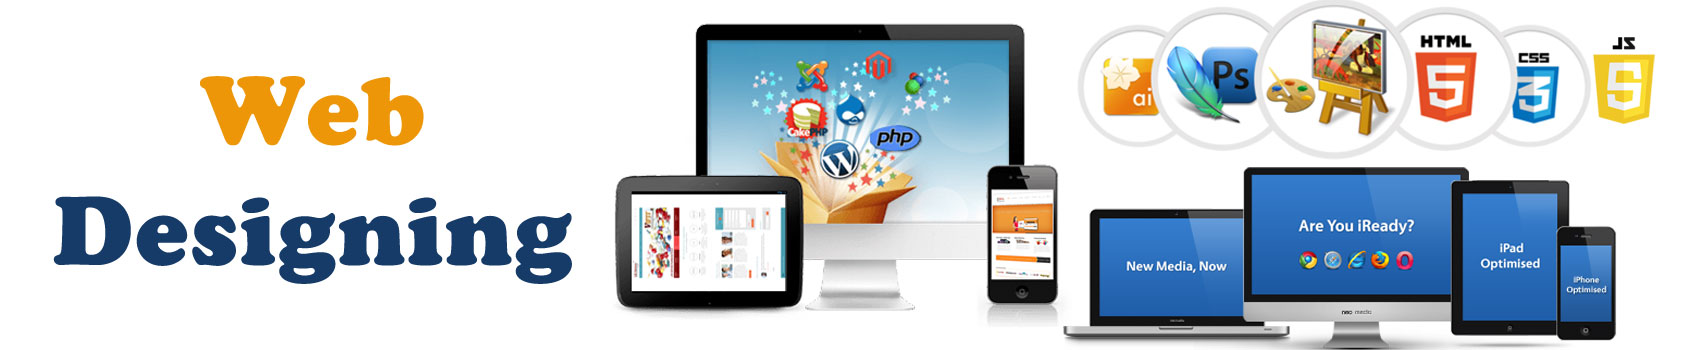 Learn Best Online Web design Designing html css javascript Training Courses Certification